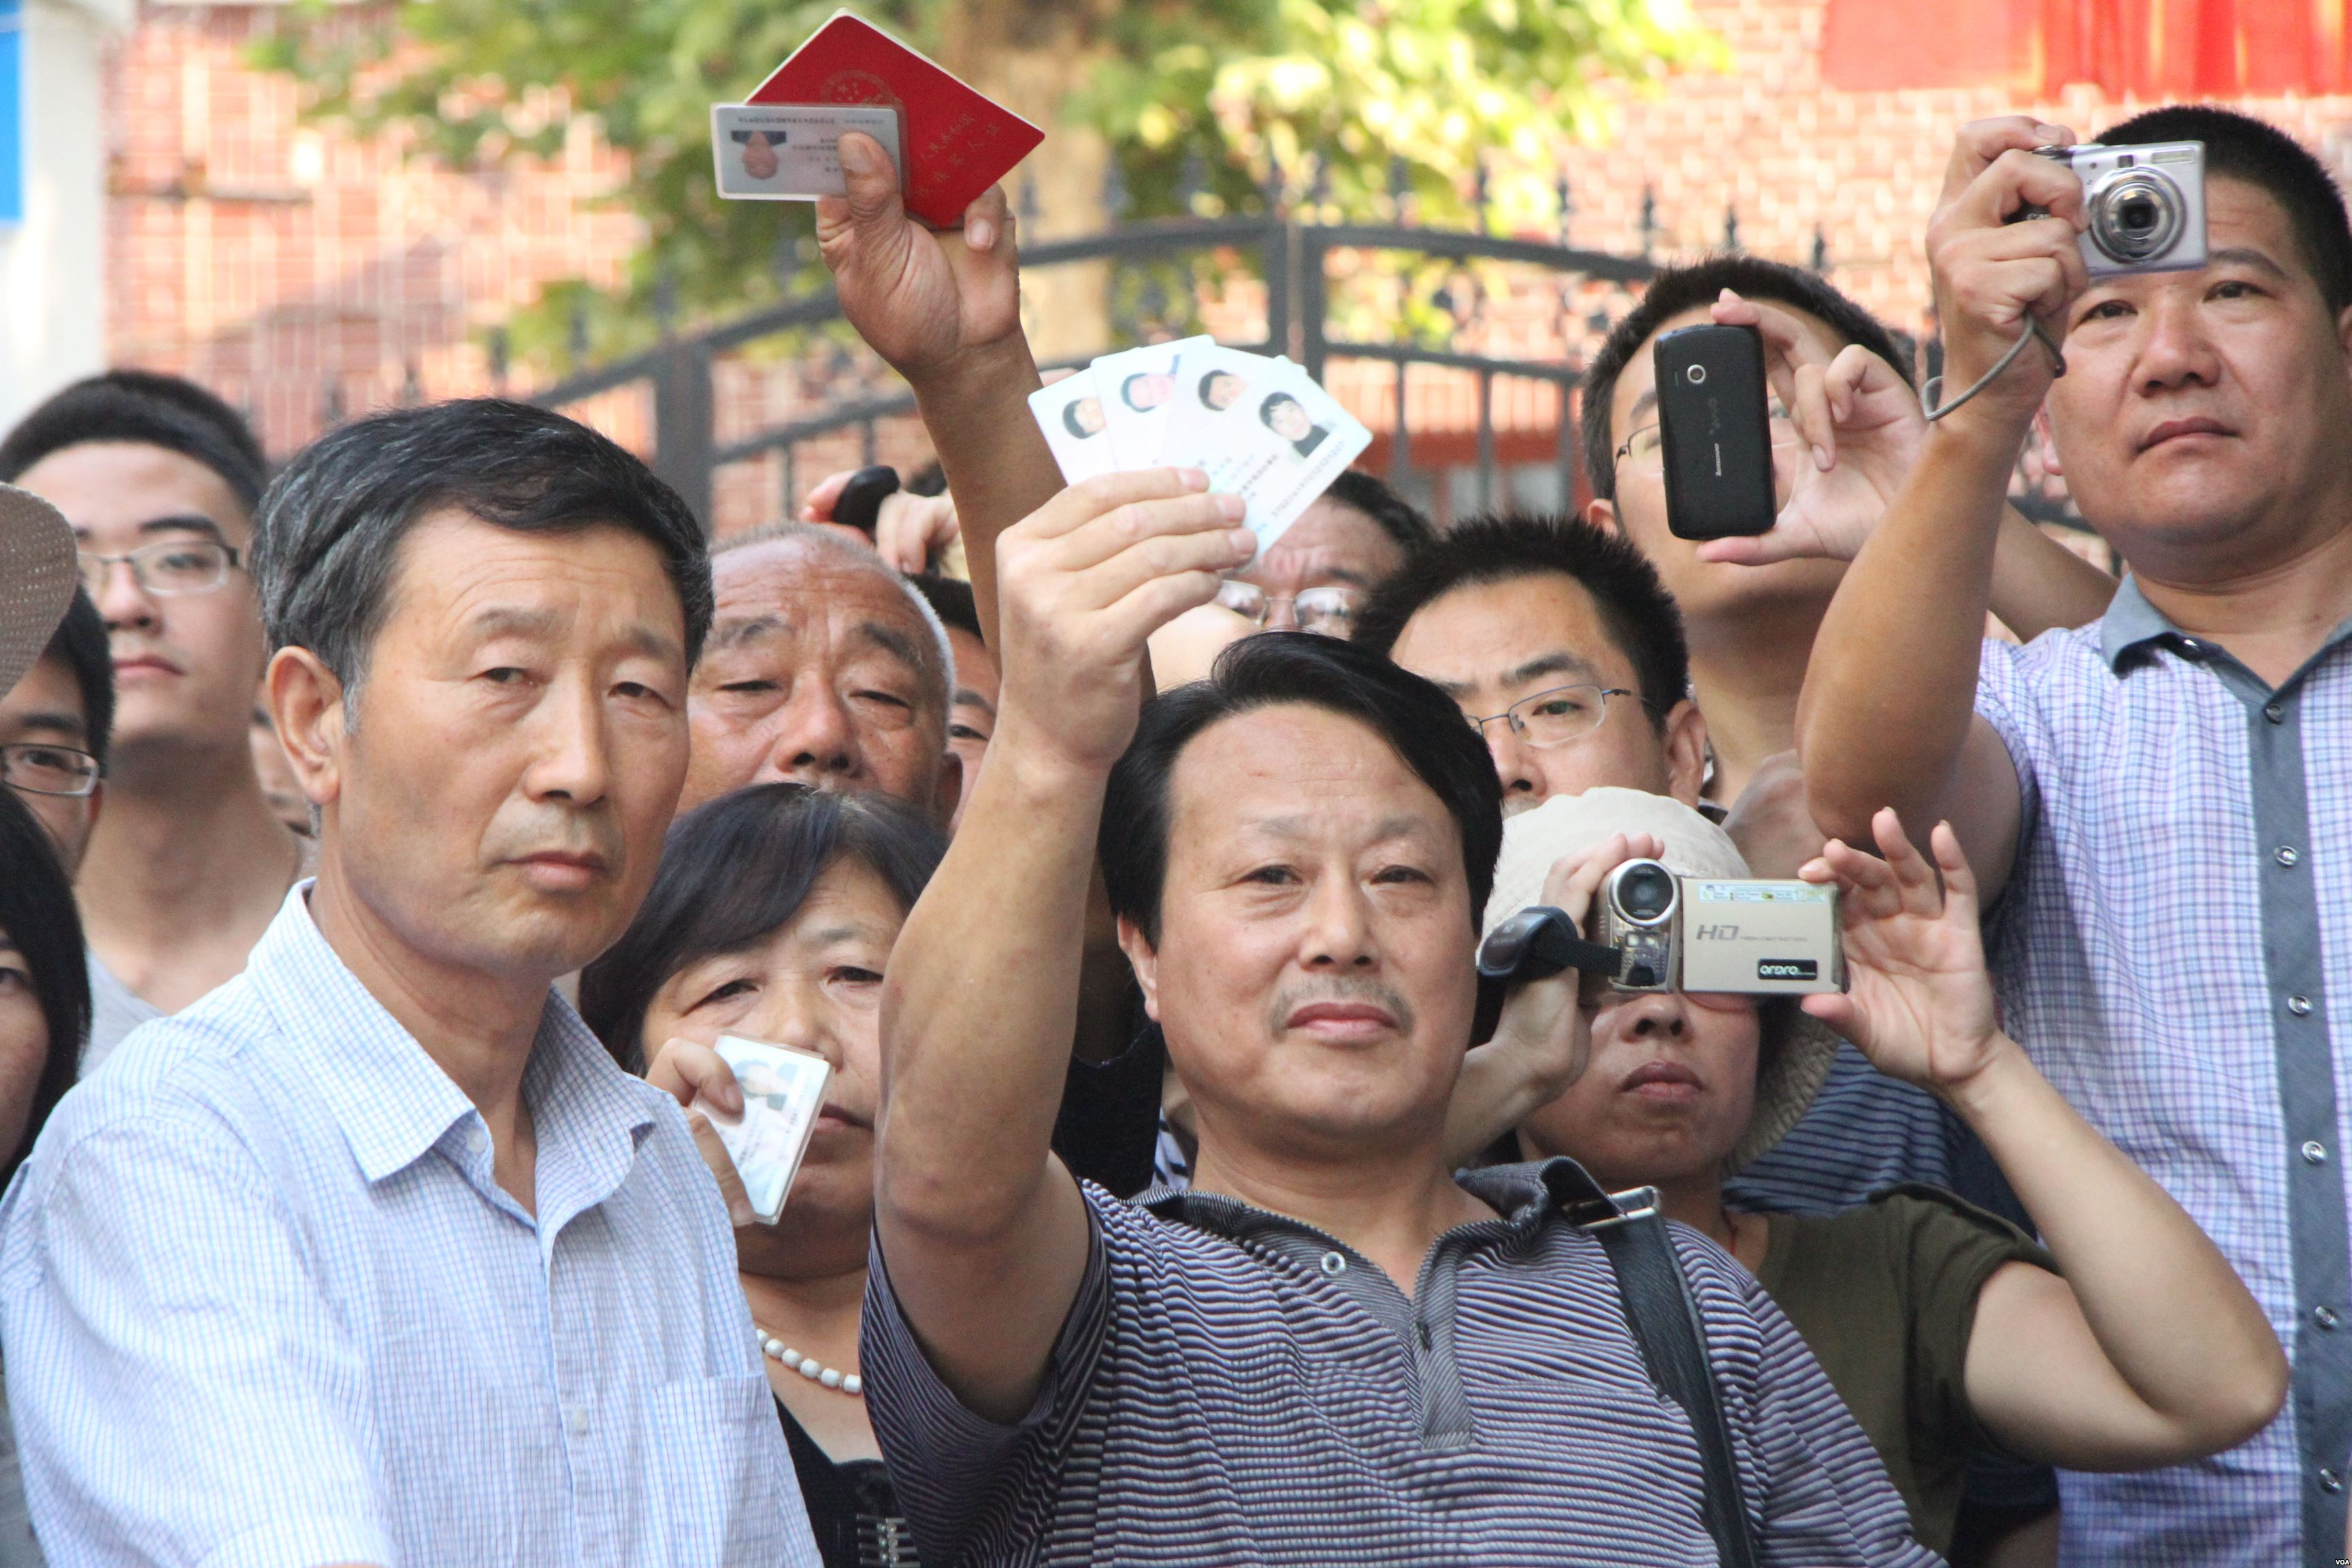 Chinese citizens holding up IDs and cameras at Bo Xilai trial